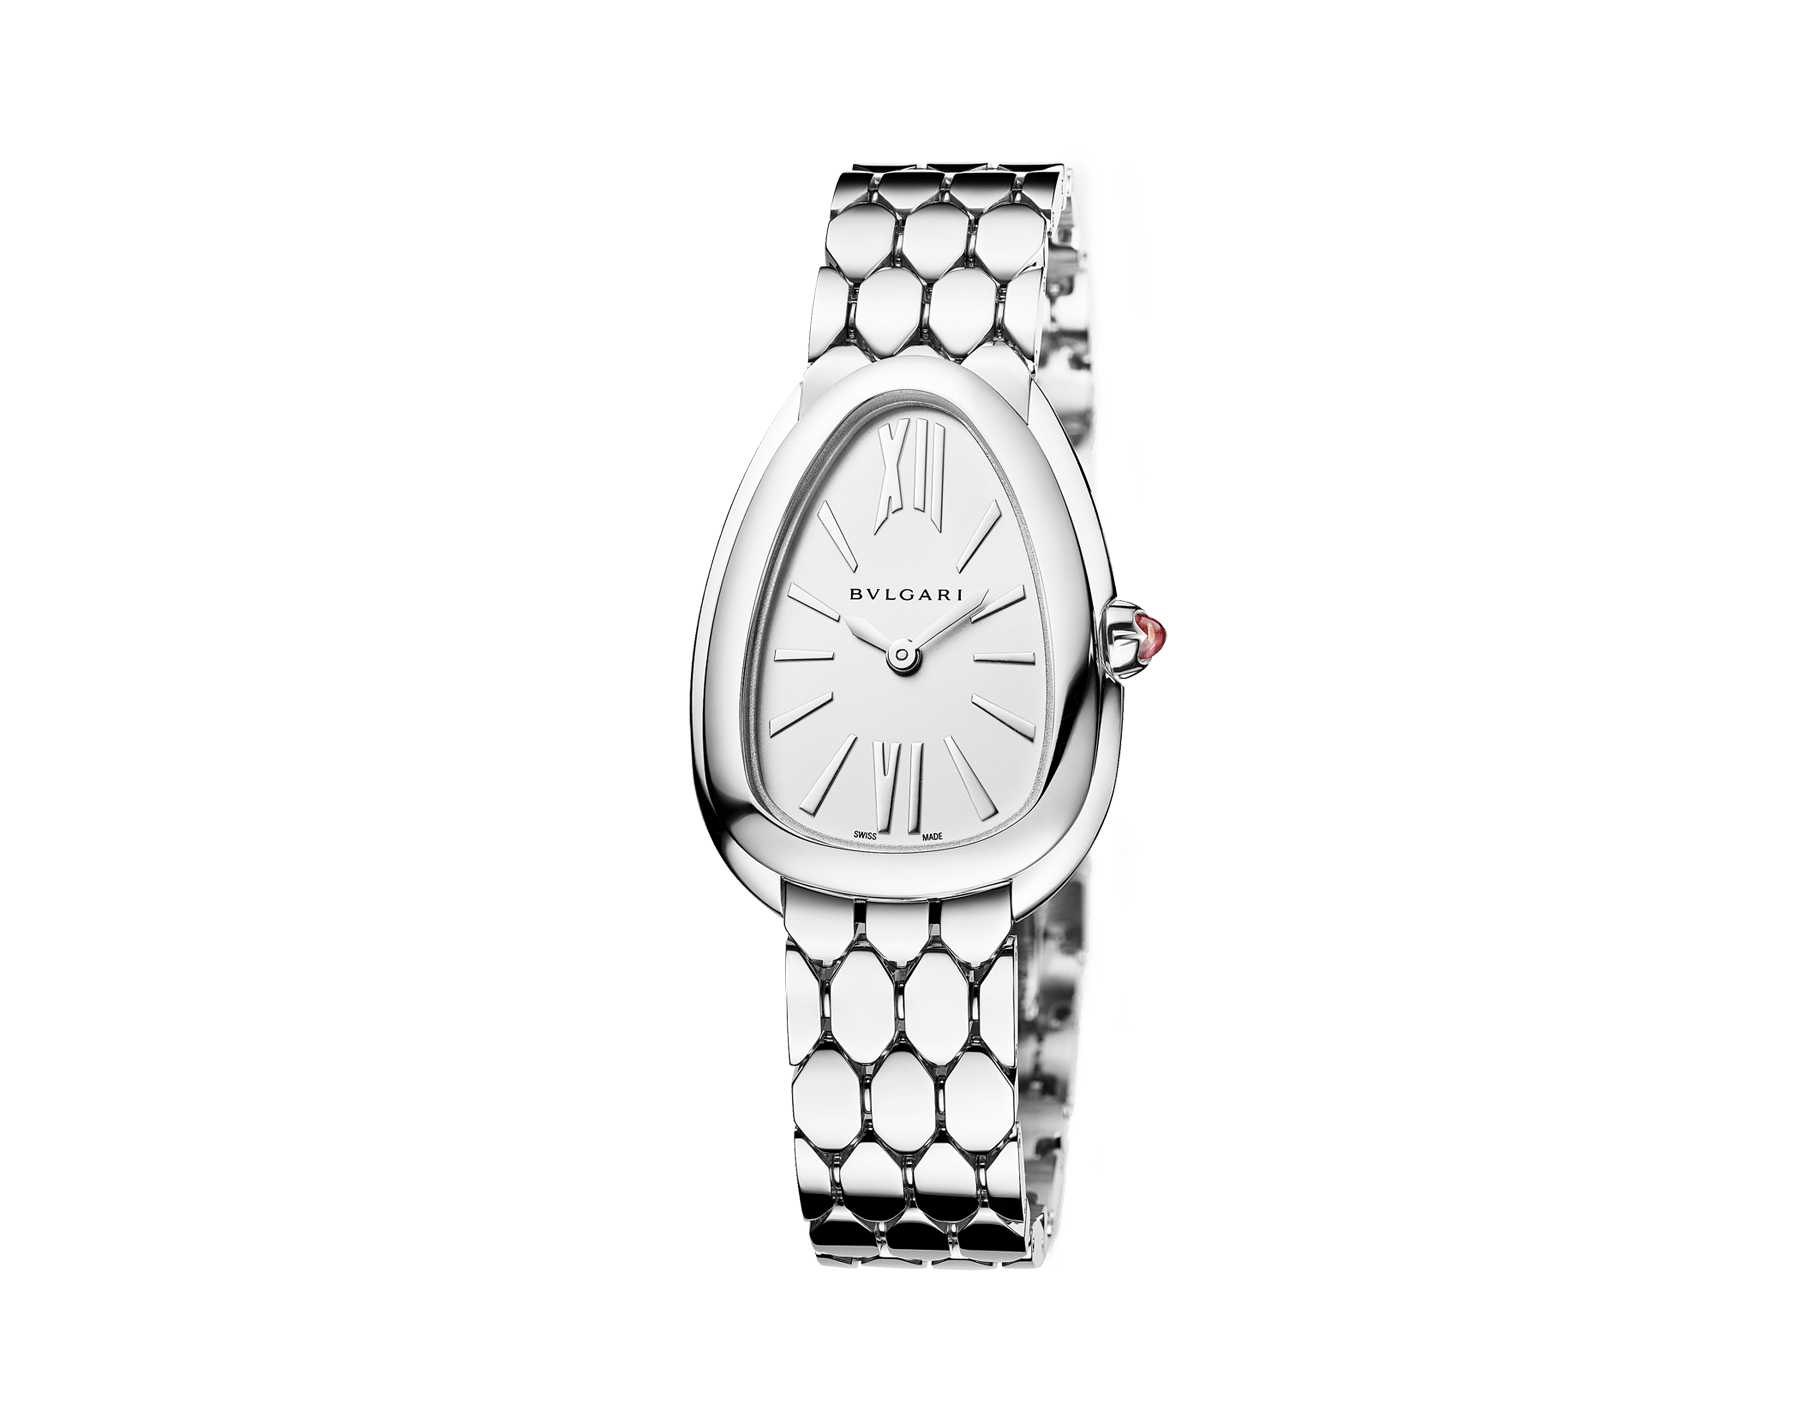 Serpenti Seduttori watch with stainless steel case, stainless steel bracelet and a white silver opaline dial. 103141 image 2